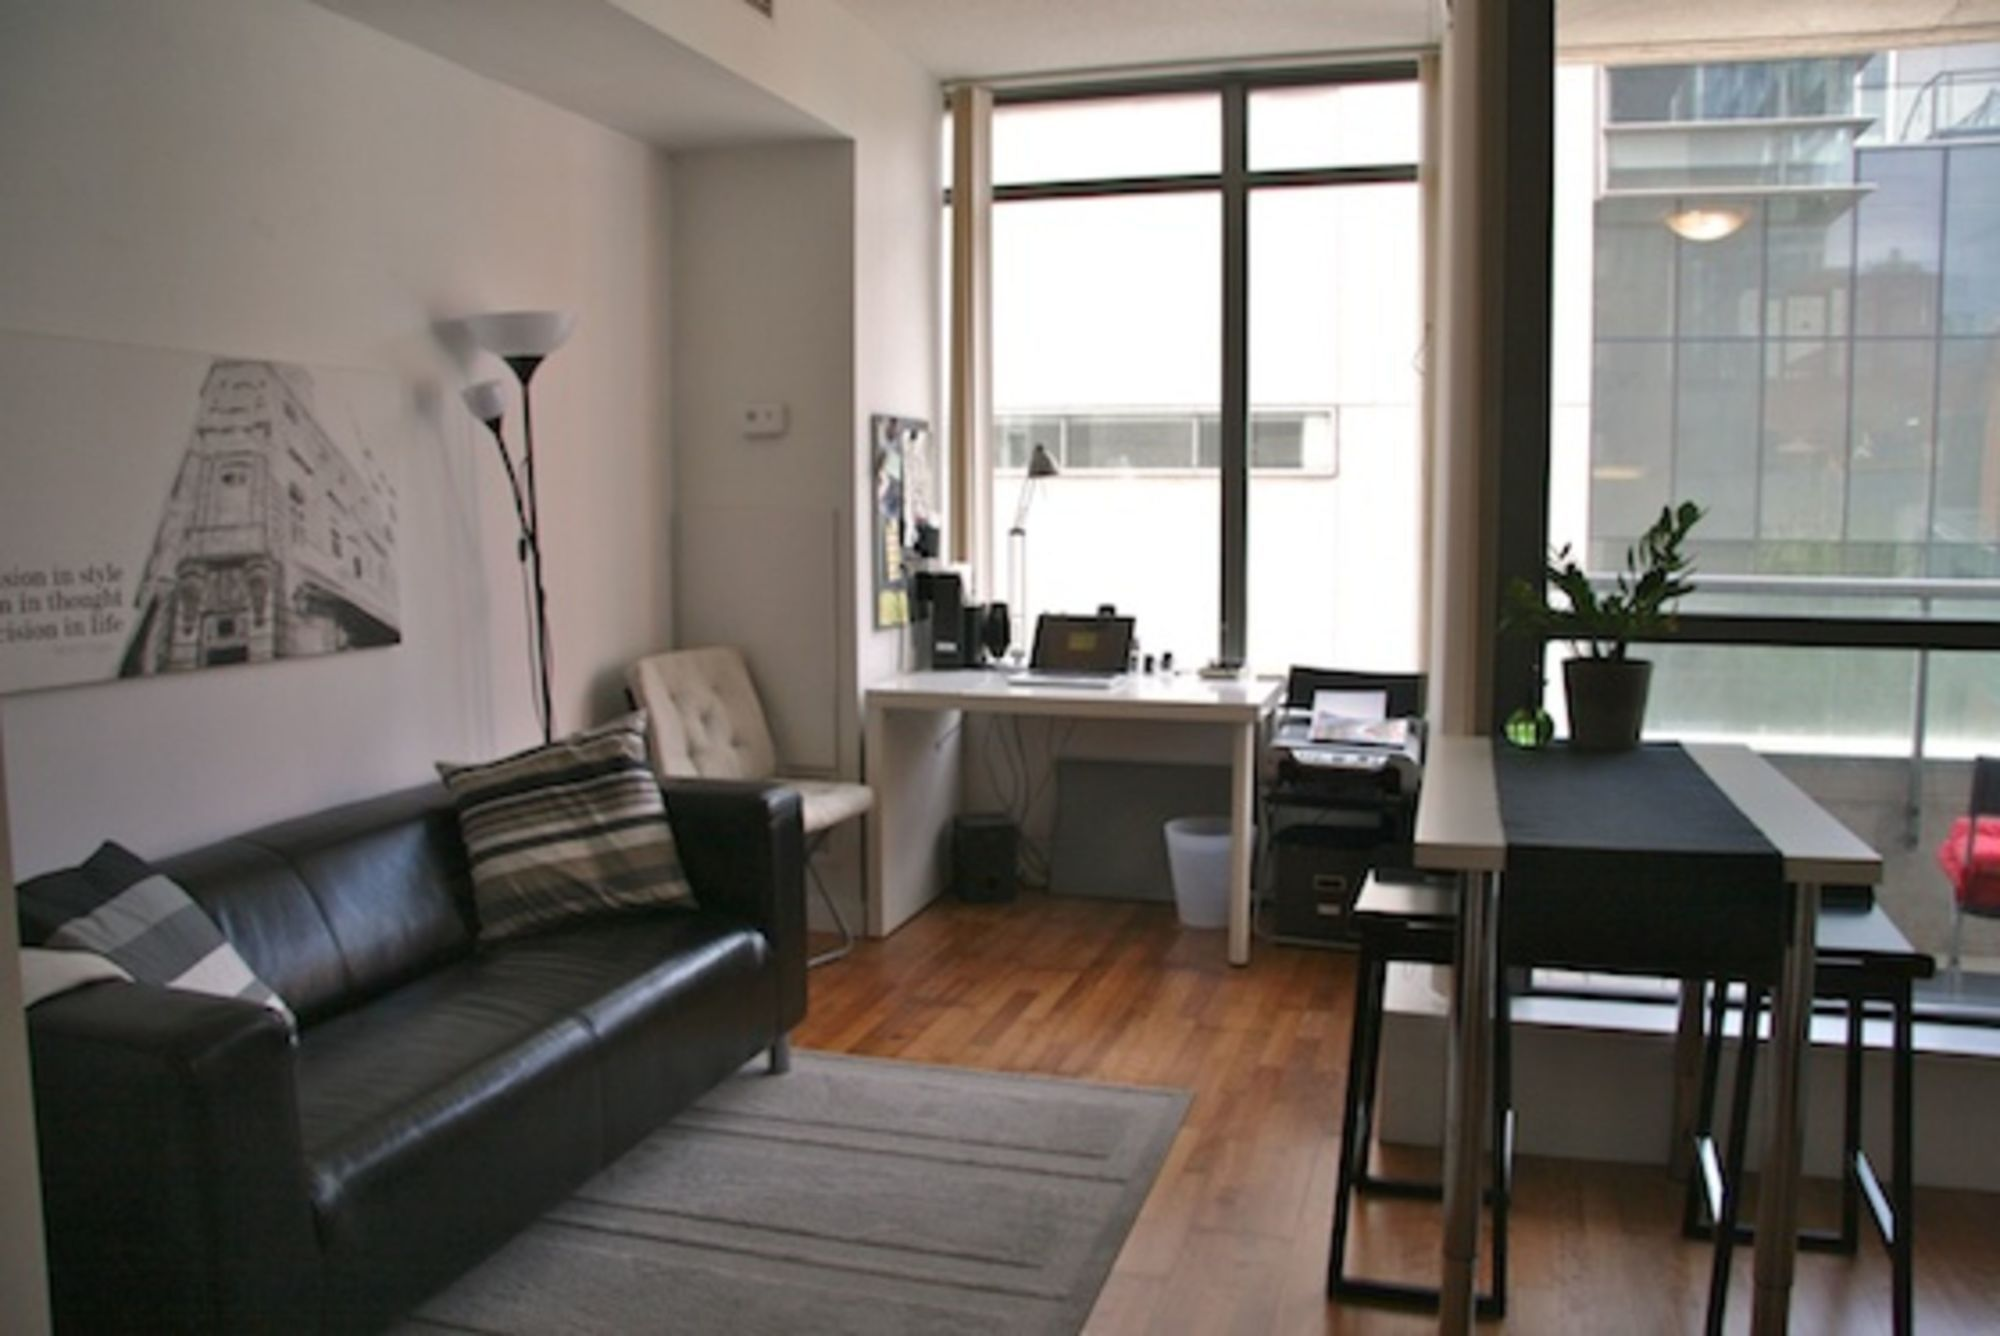 Apartment for rent in Toronto for 1,495 / month Condos